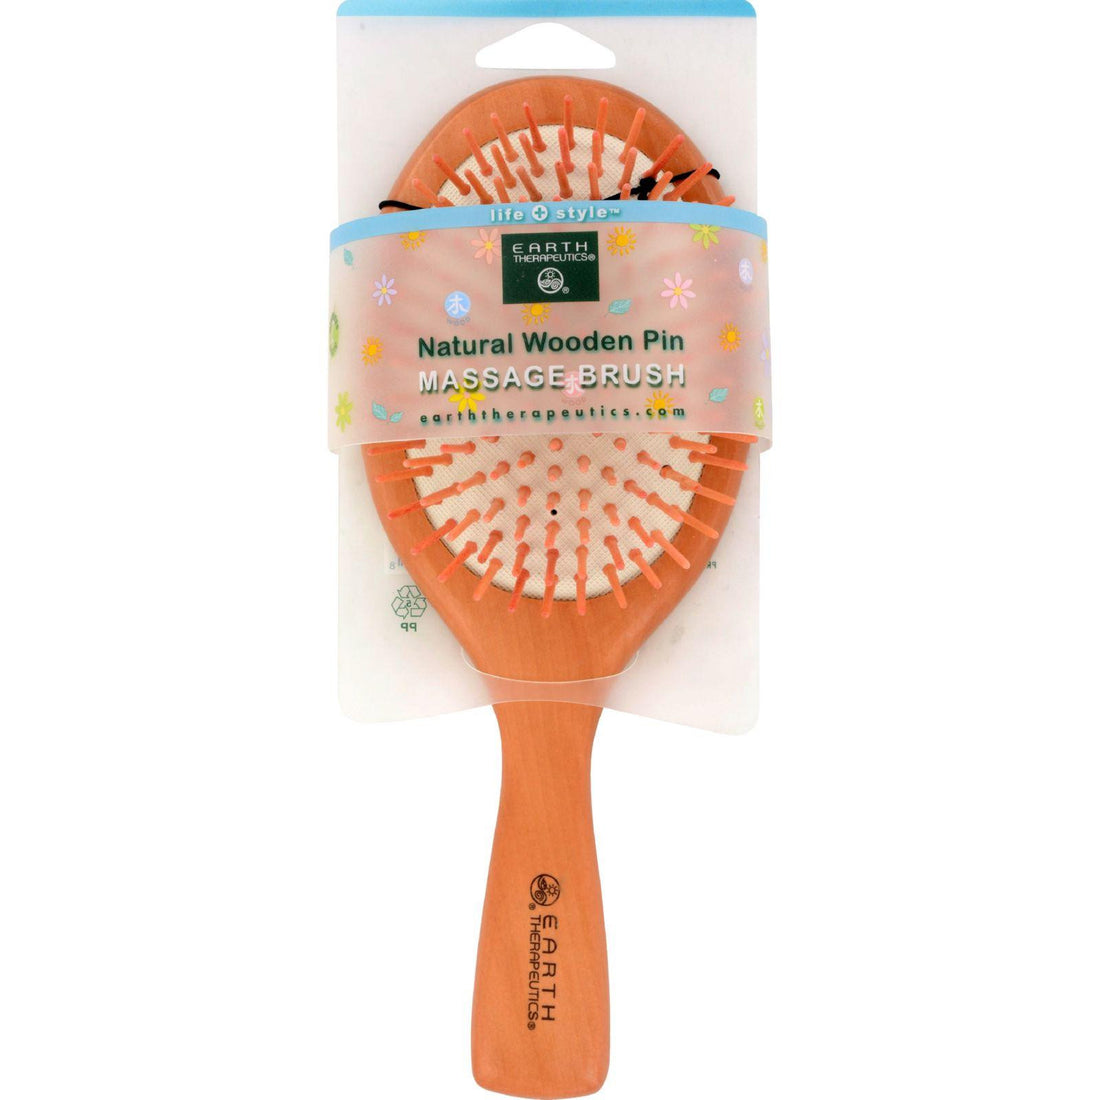 Mother Mantis: Earth Therapeutics Natural Wooden Pin Massage Brush Large - 1 Brush Earth Therapeutics